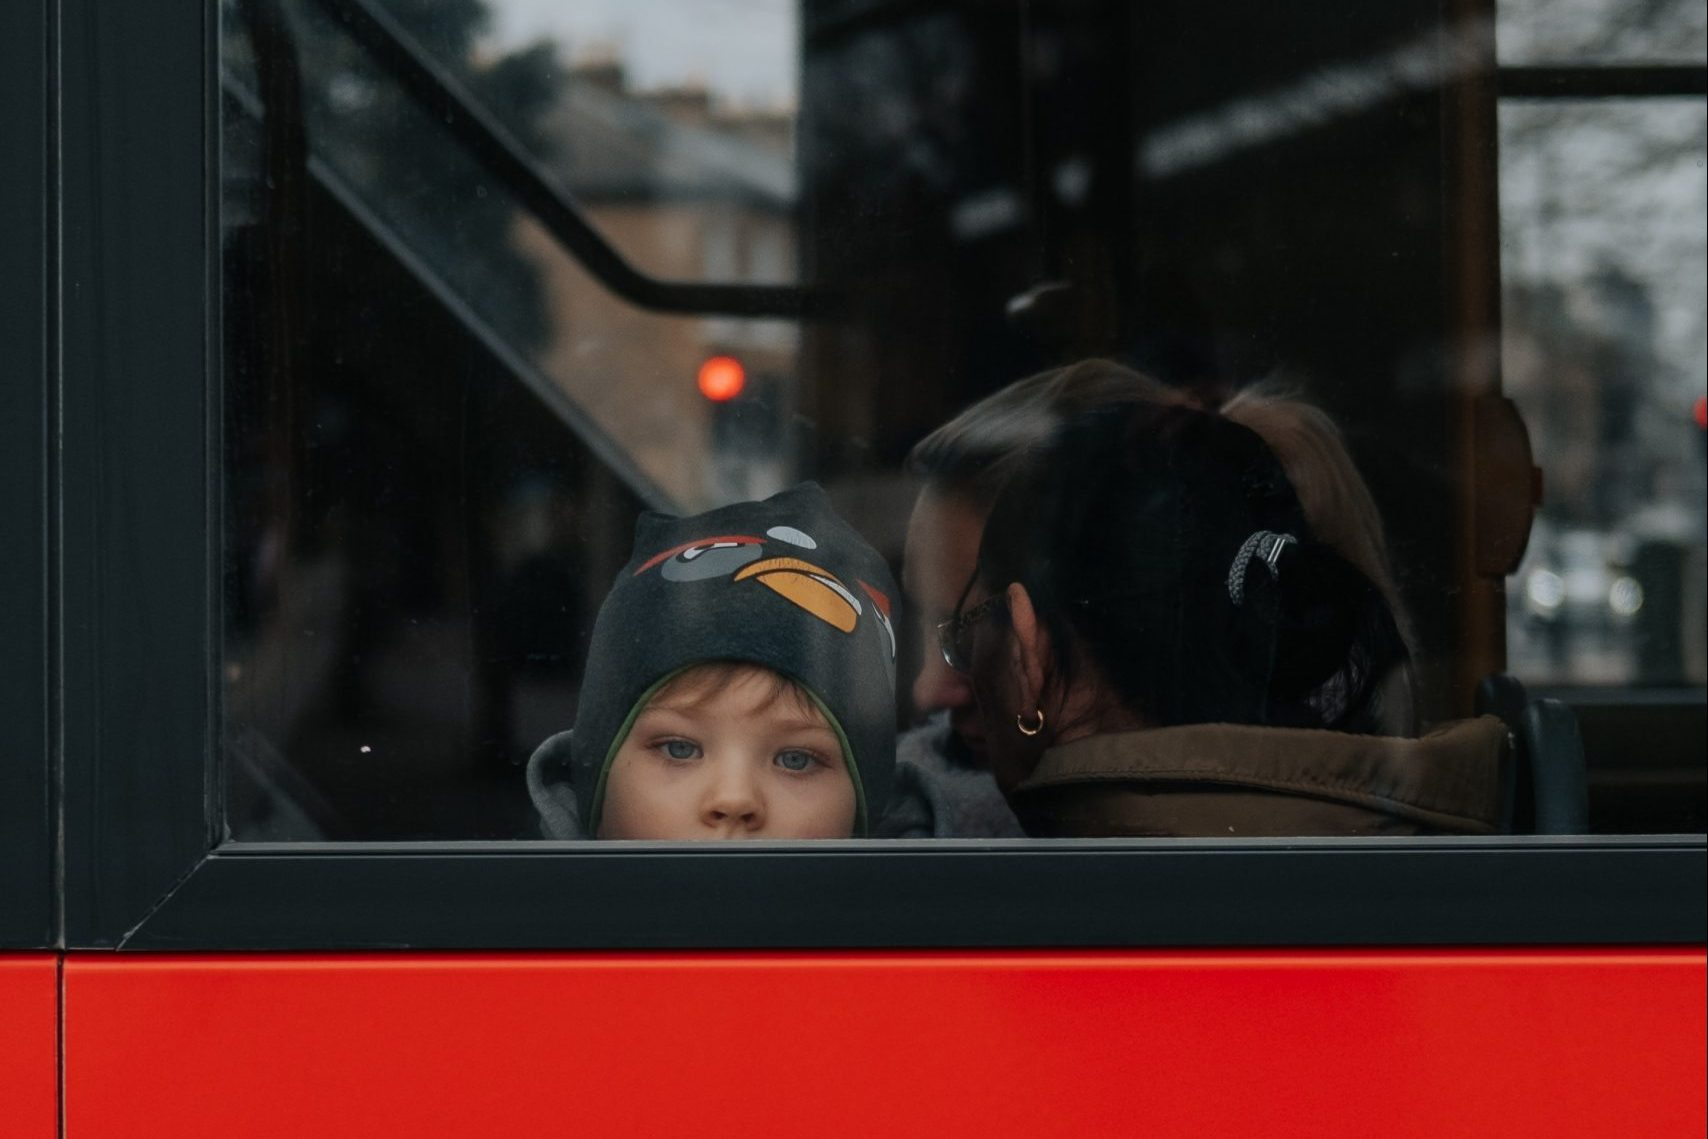 In an article about gender, a photo a child looking out the back window of a bus